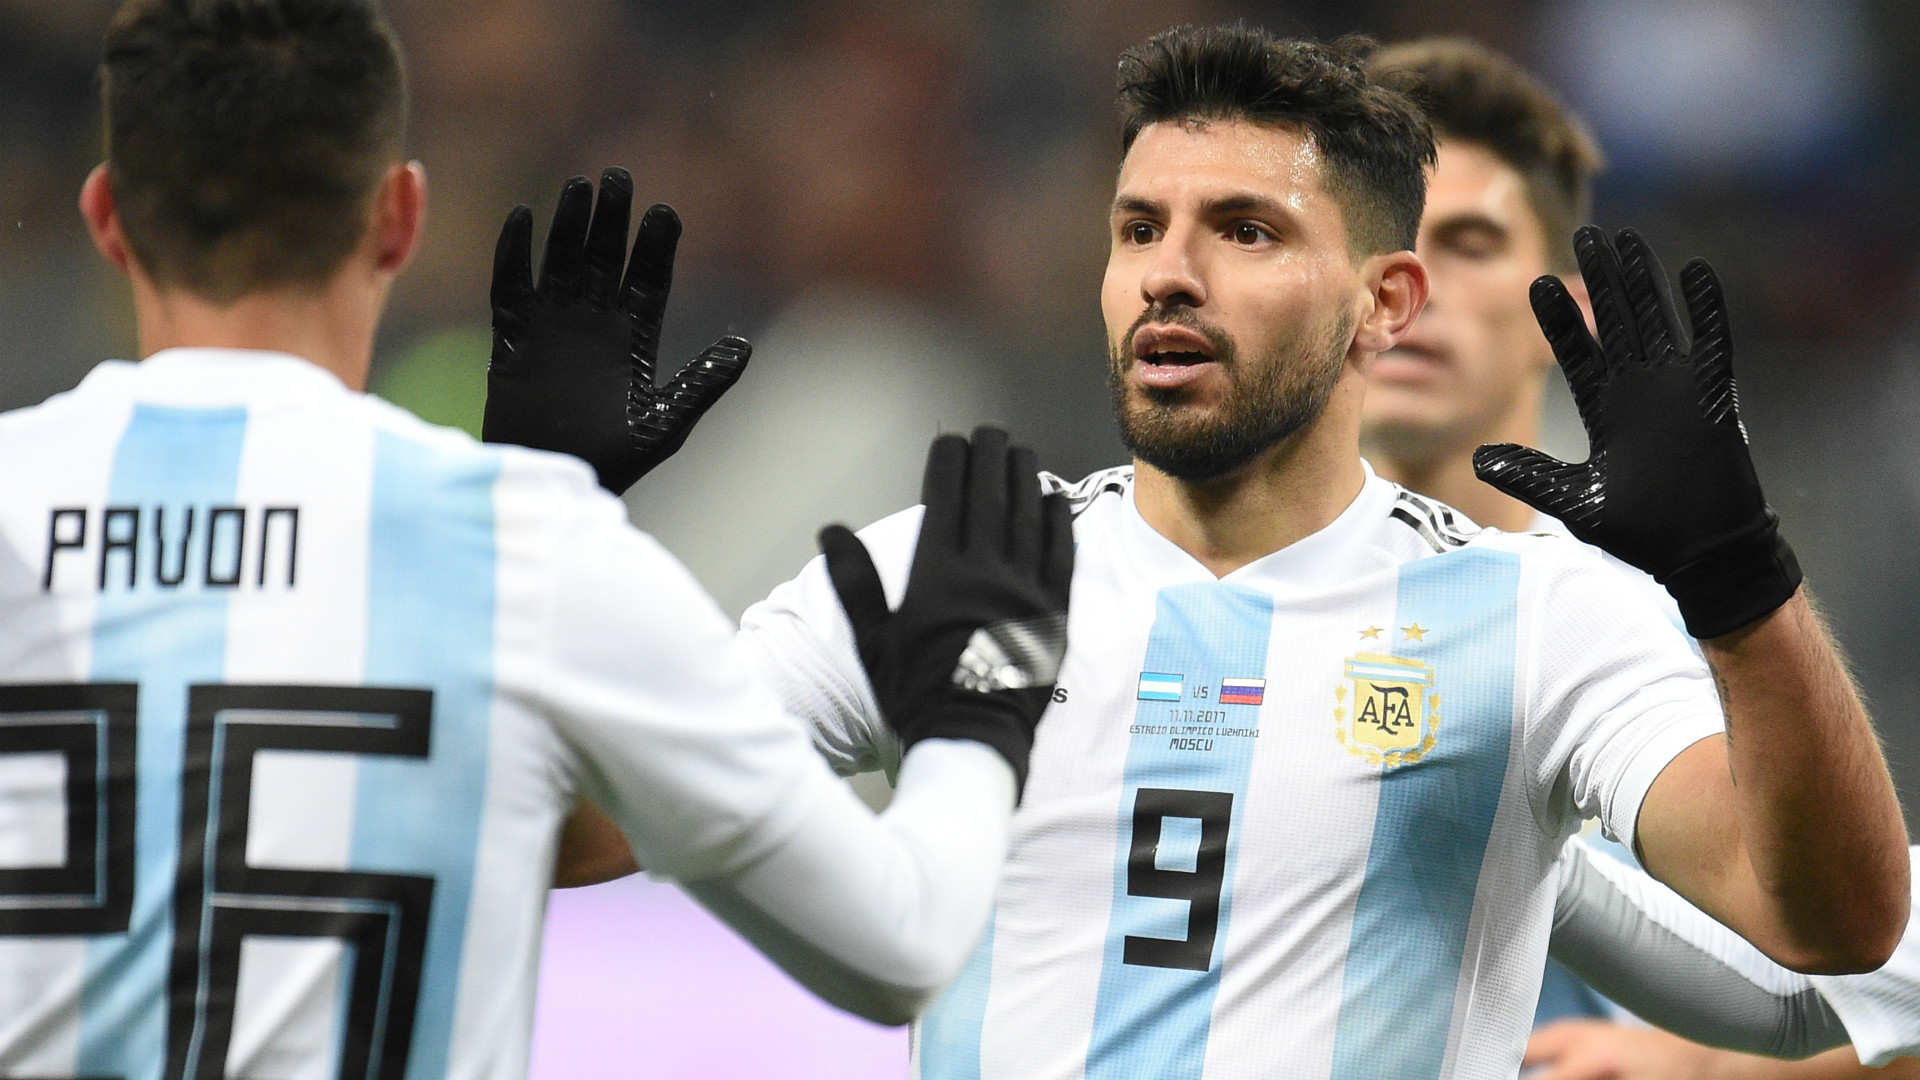 Sergio Aguero Reportedly Fainted in Argentina Locker Room, Underwent Examination